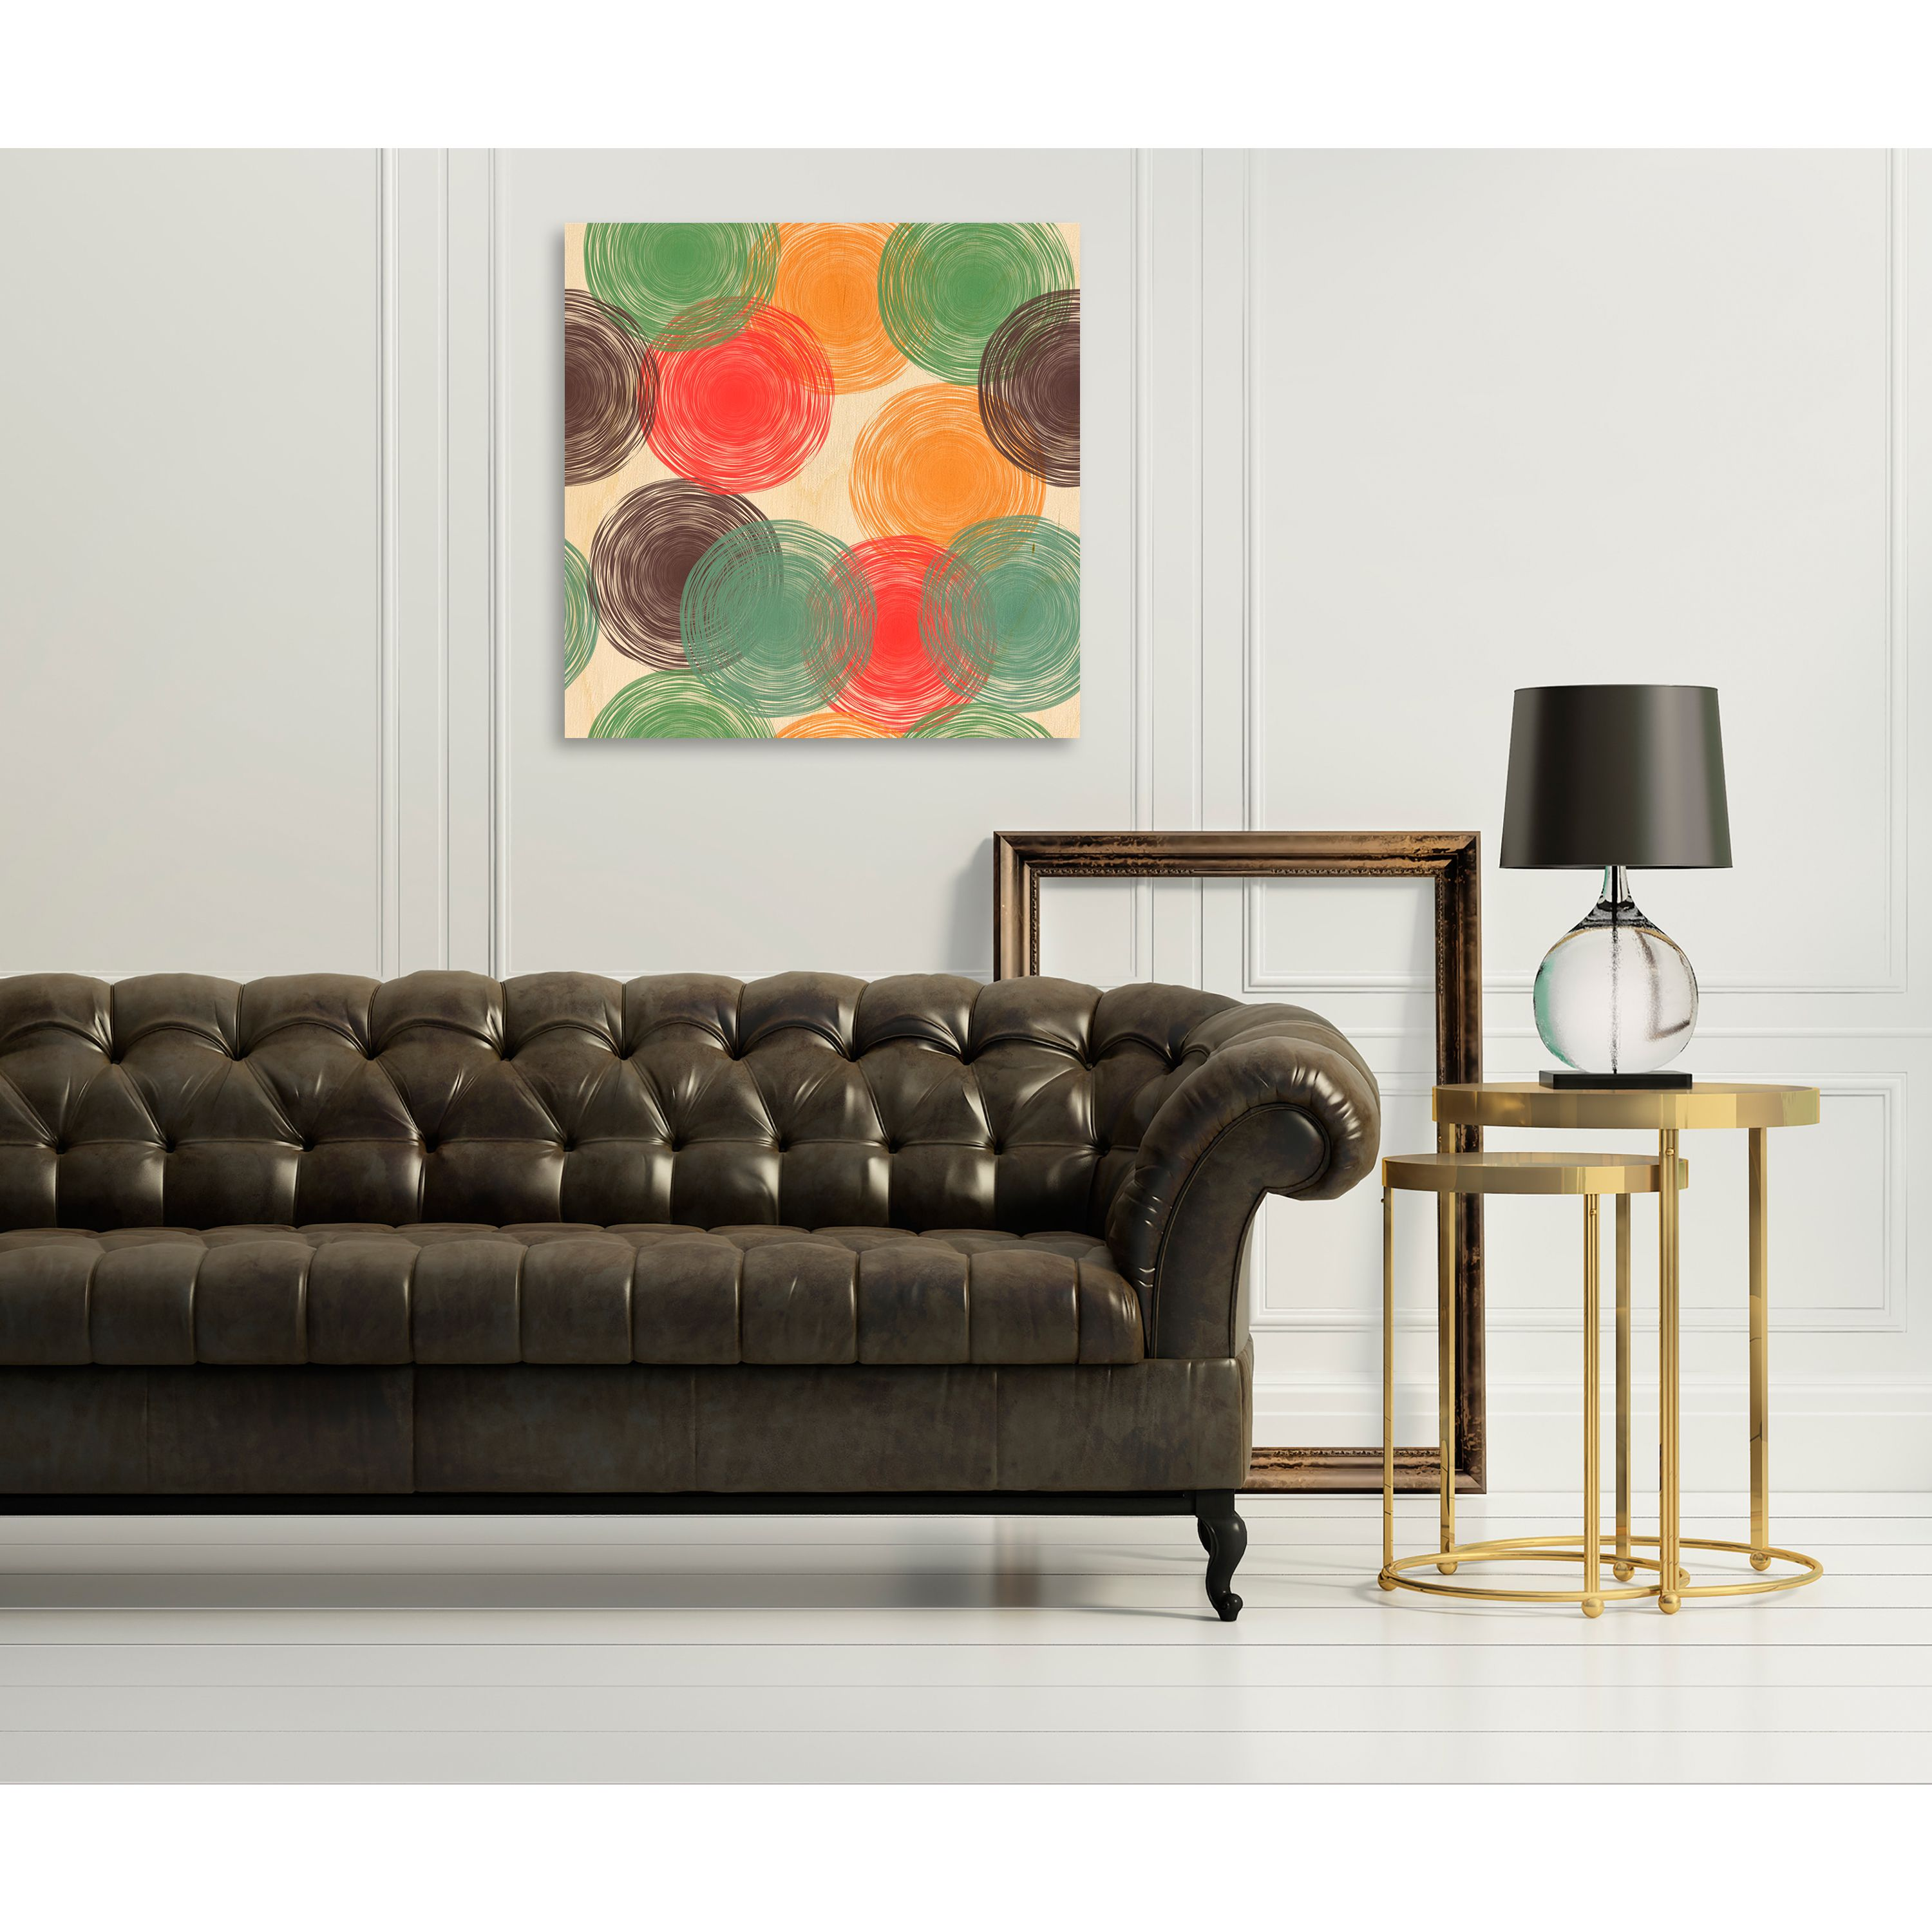 Gallery Direct Abstract Background with Hand Drawn Pastel Circles Print on Birch Wall Art